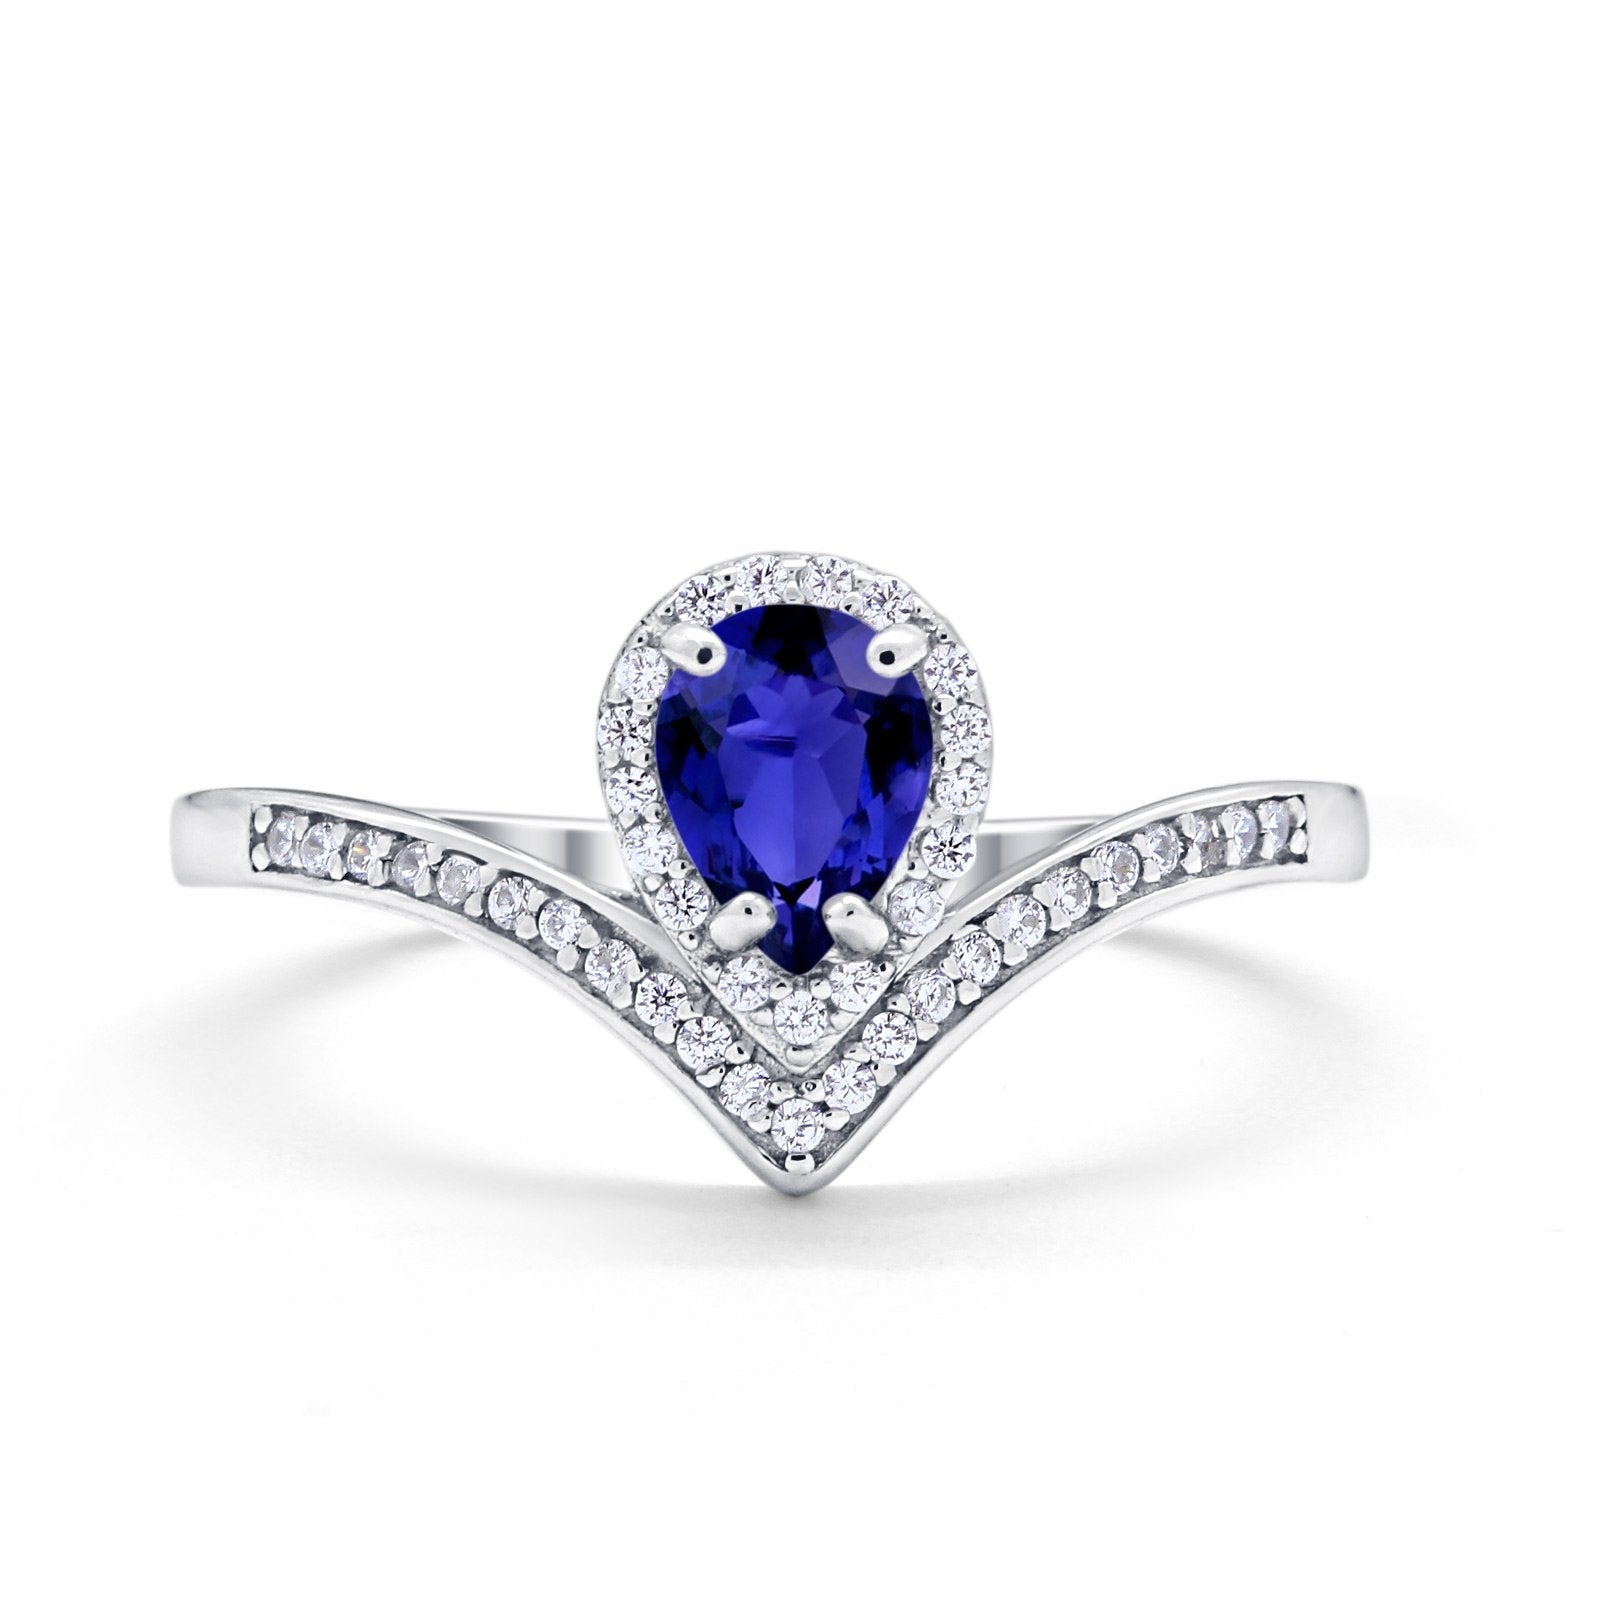 Teardrop V Midi Ring Pear Simulated Blue Sapphire CZ 925 Sterling Silver